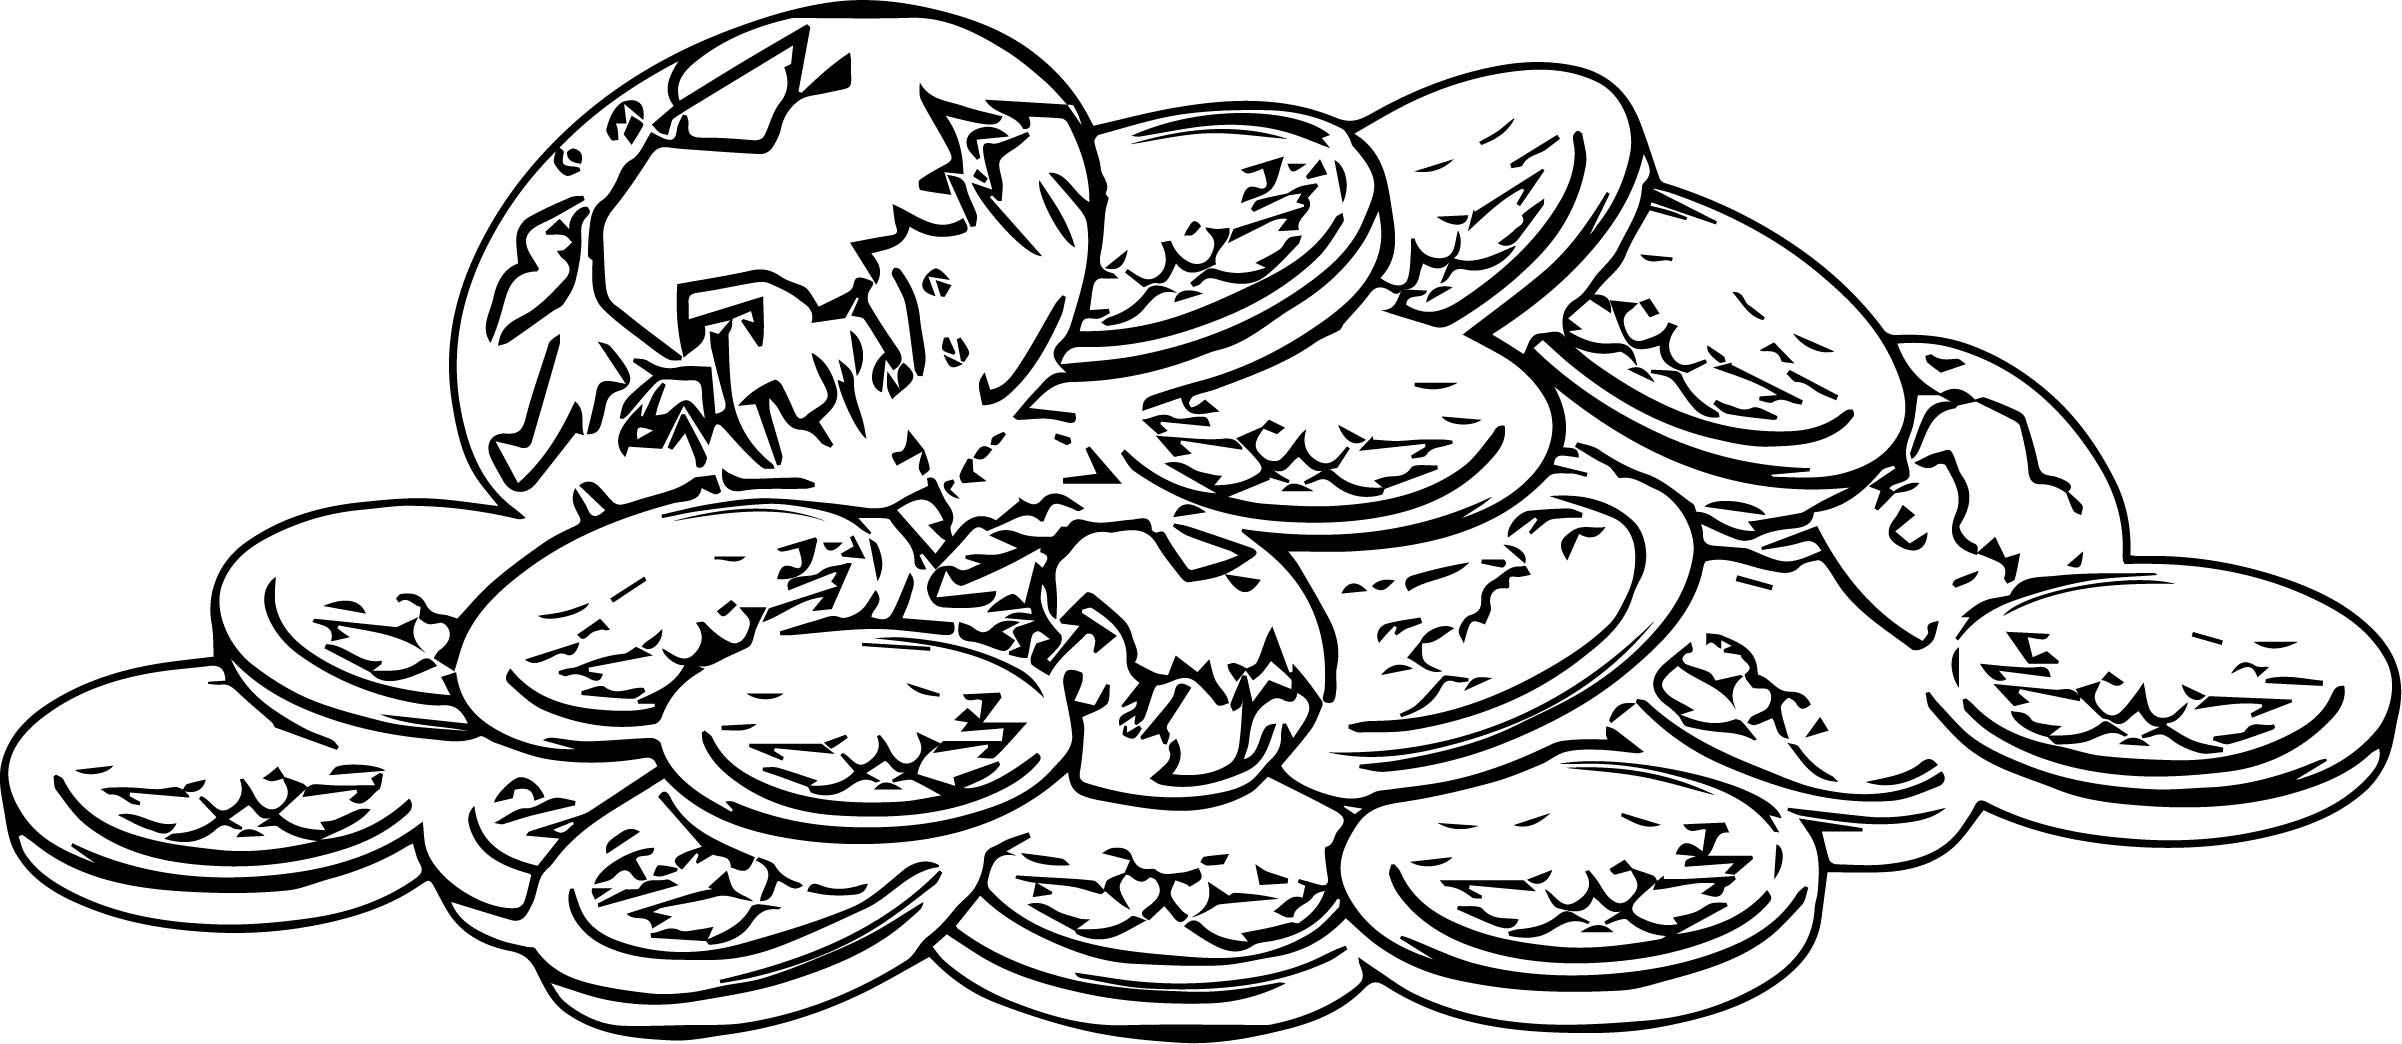 Gold Coins And Diamonds Treasure Coloring Page